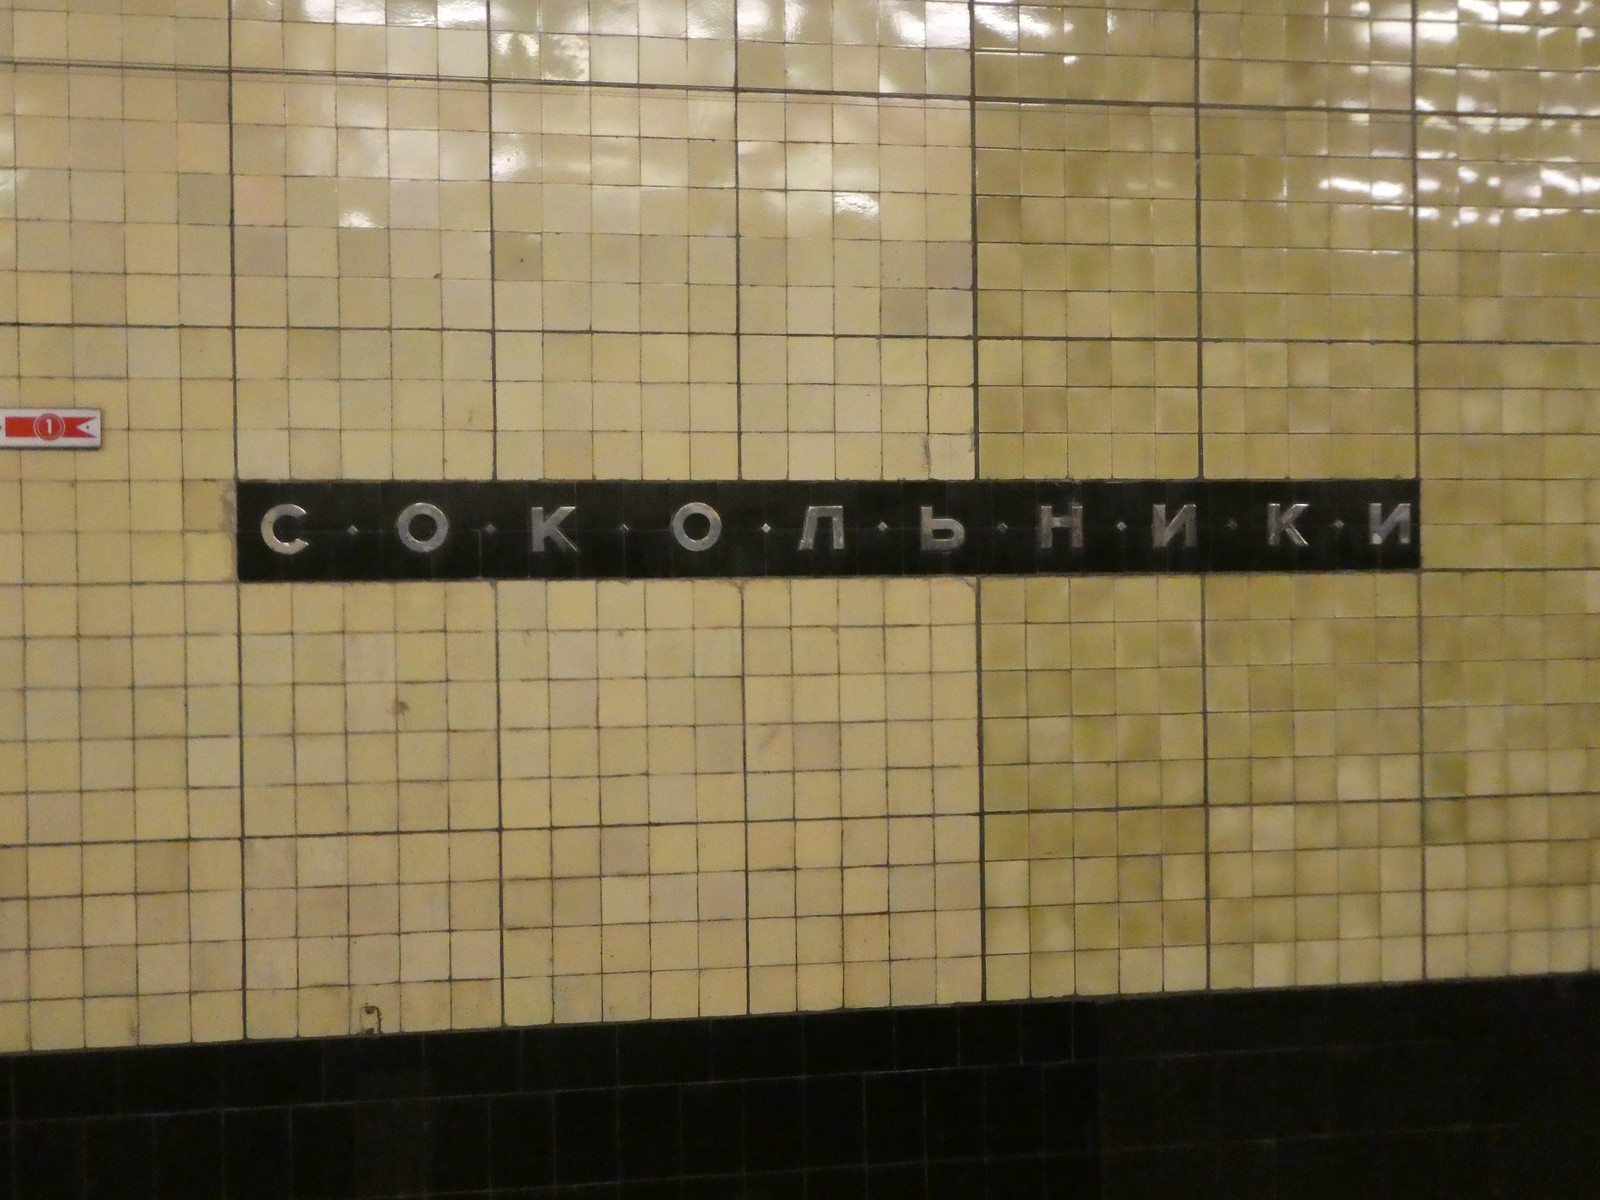 Sokolniki Station sign Moscow Metro